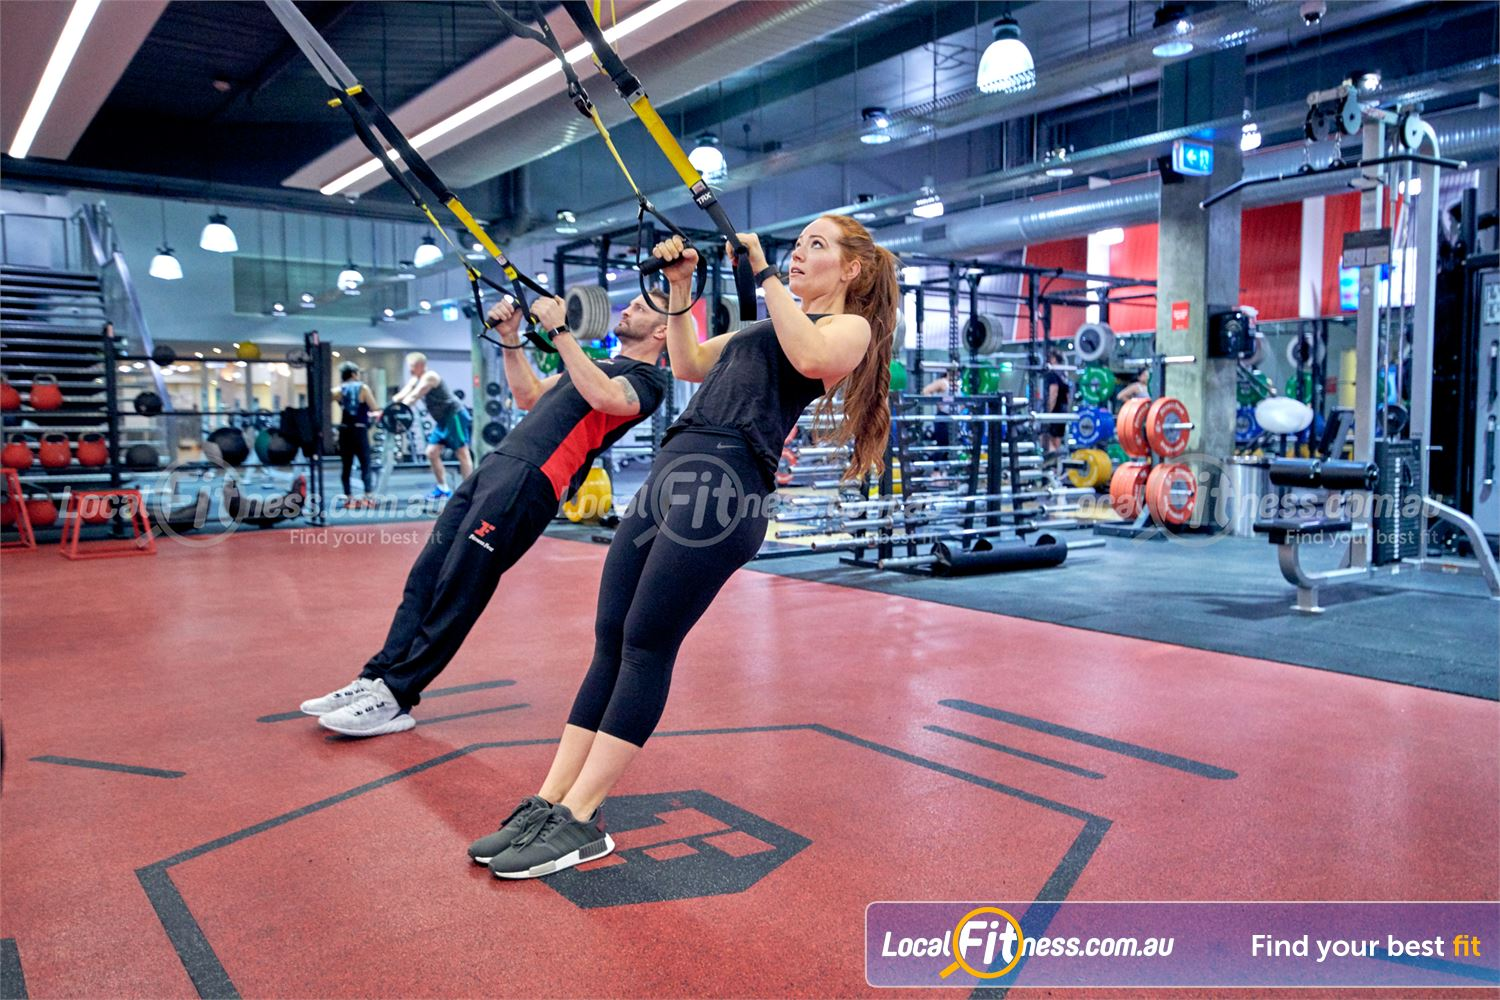 Fitness First Victoria Gardens Richmond Challenge your core with TRX suspension training in our Richmond gym.